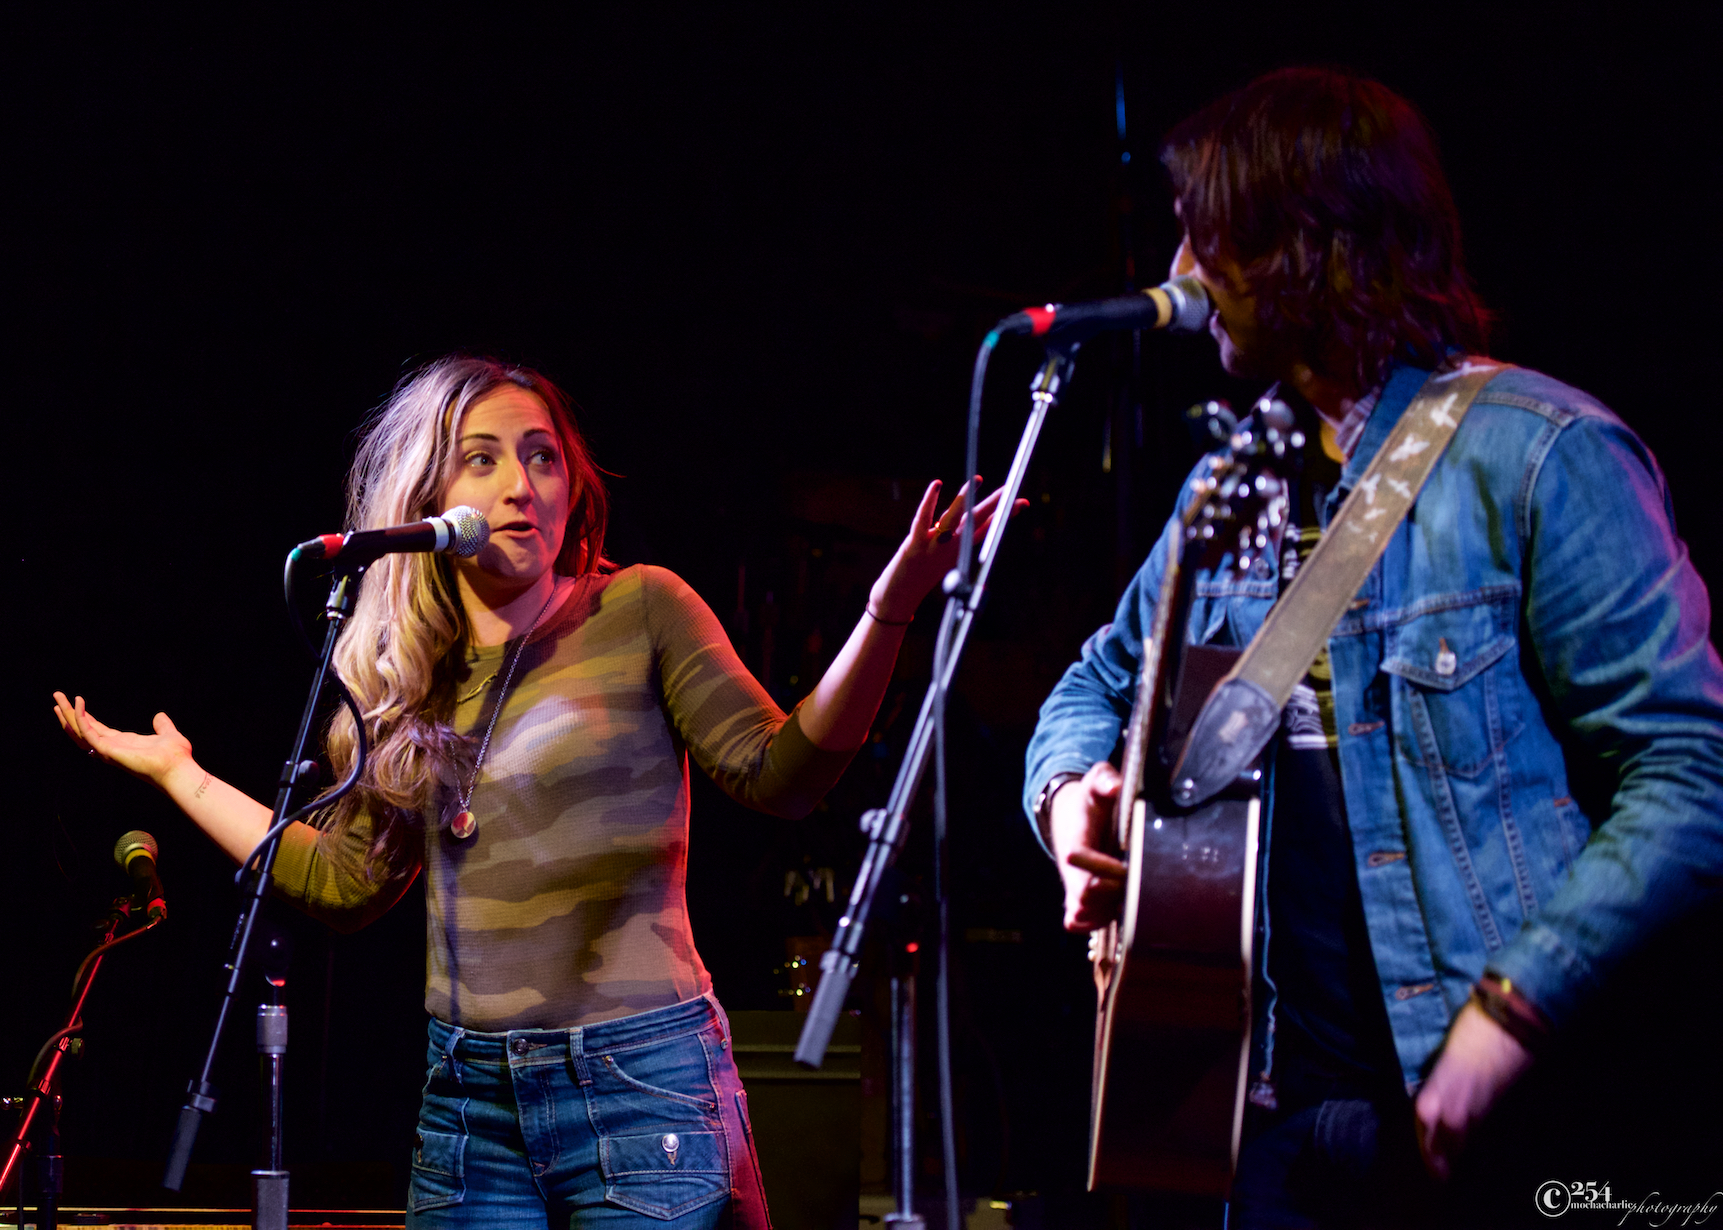 Bradley Laina & Taylor Lynn of Vaudeville Etiquette at The Tractor Tavern (Photo by Mocha Charlie)